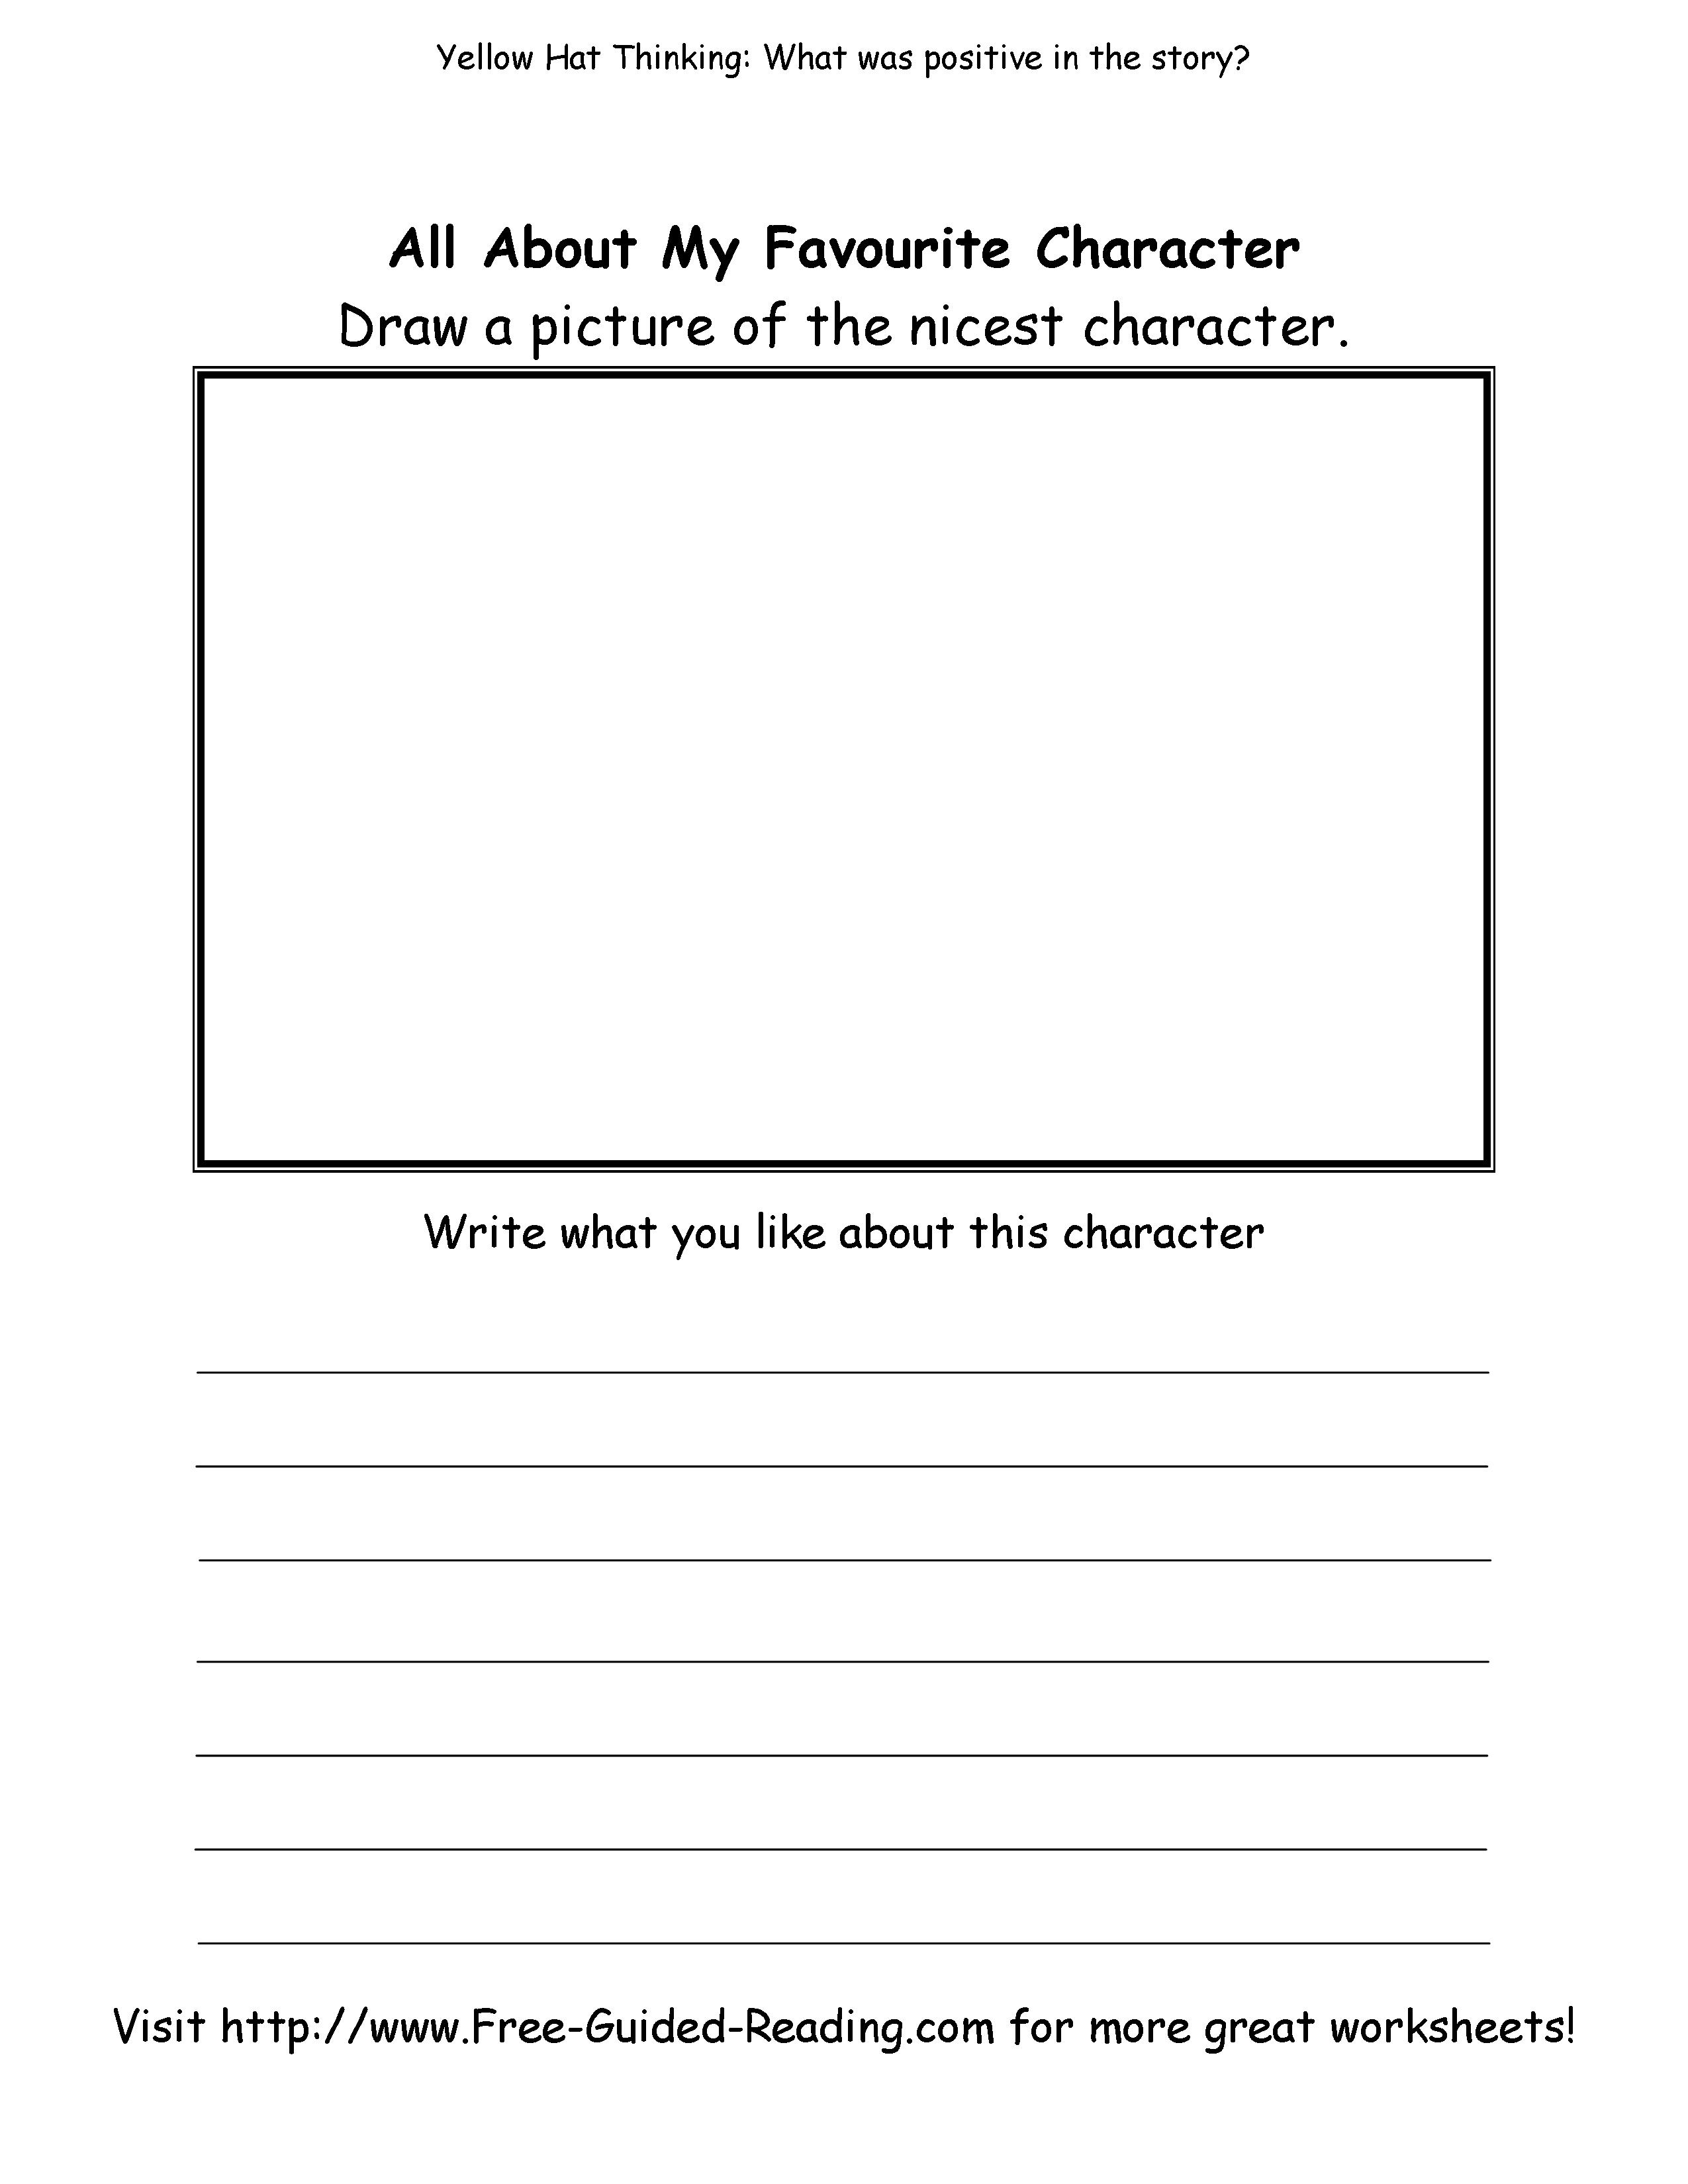 5 Best Images Of Black And White Thinking Worksheet